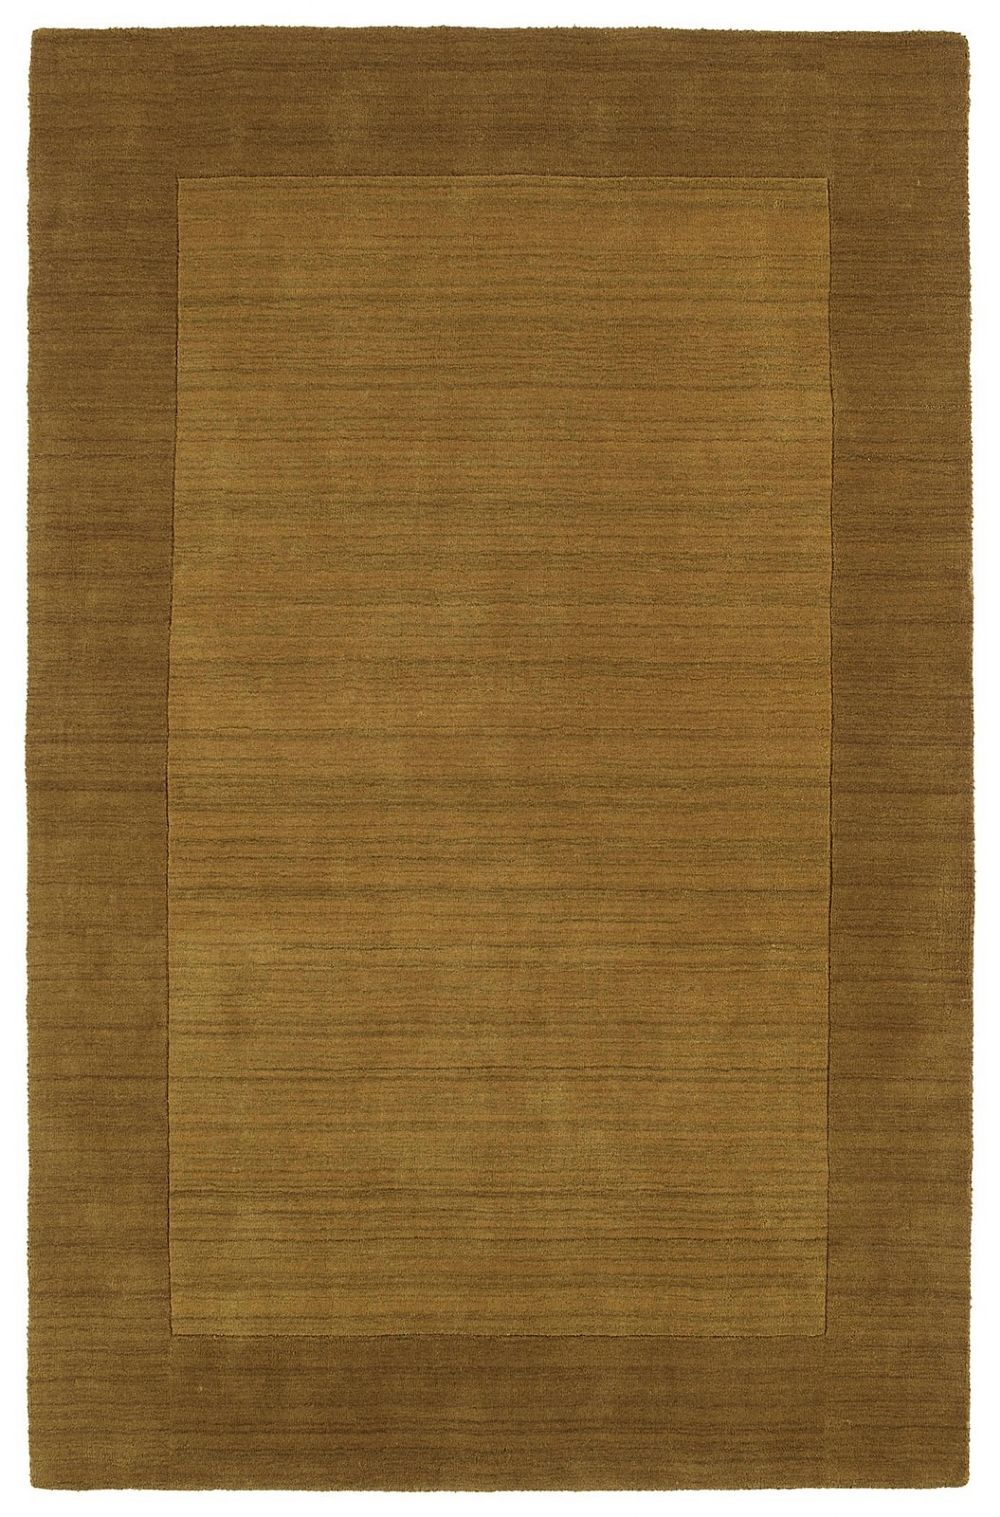 kaleen regency contemporary area rug collection